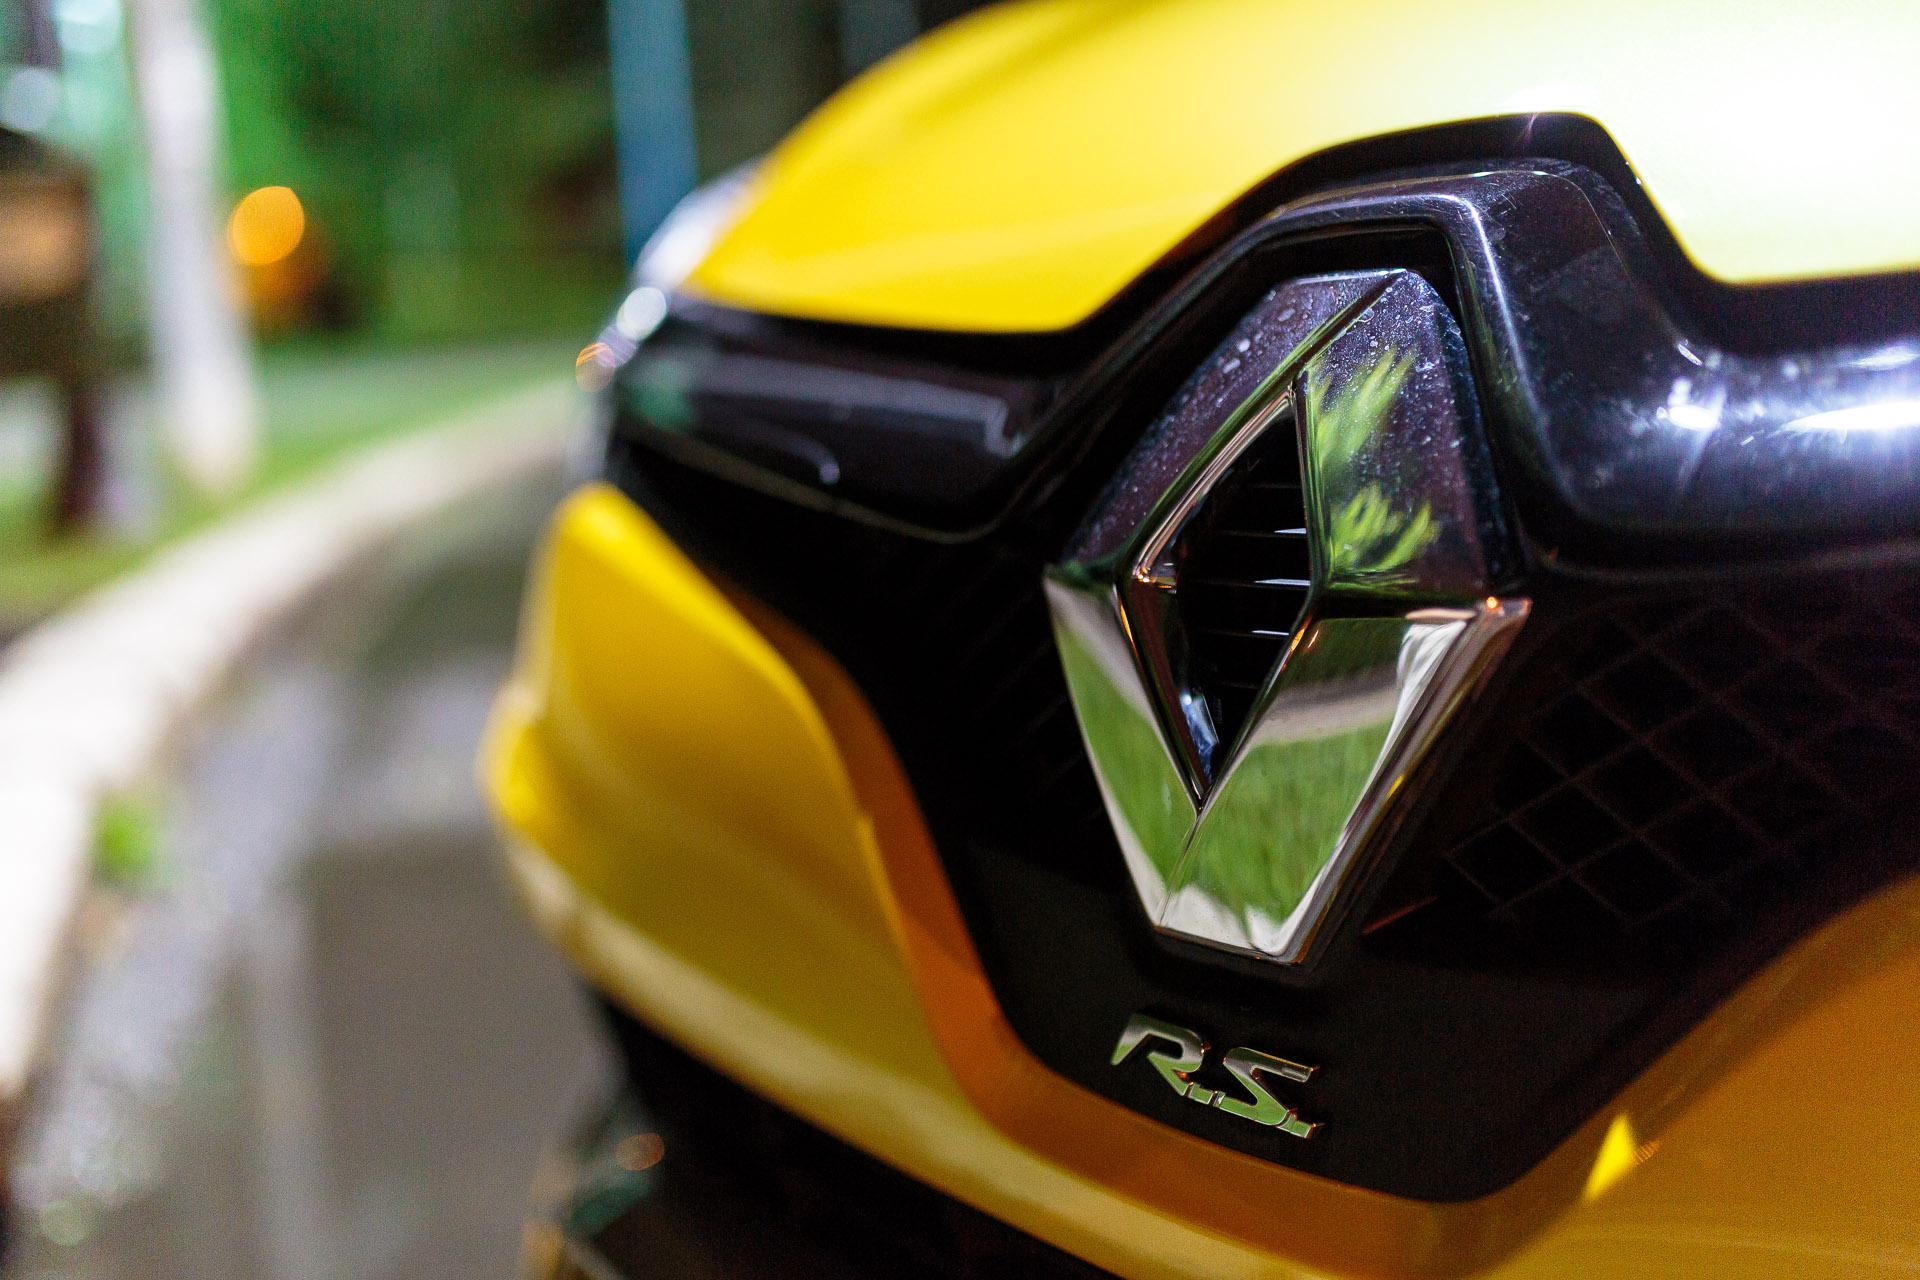 Drive Test Renault Clio RS 1.6T 200CP EDC6